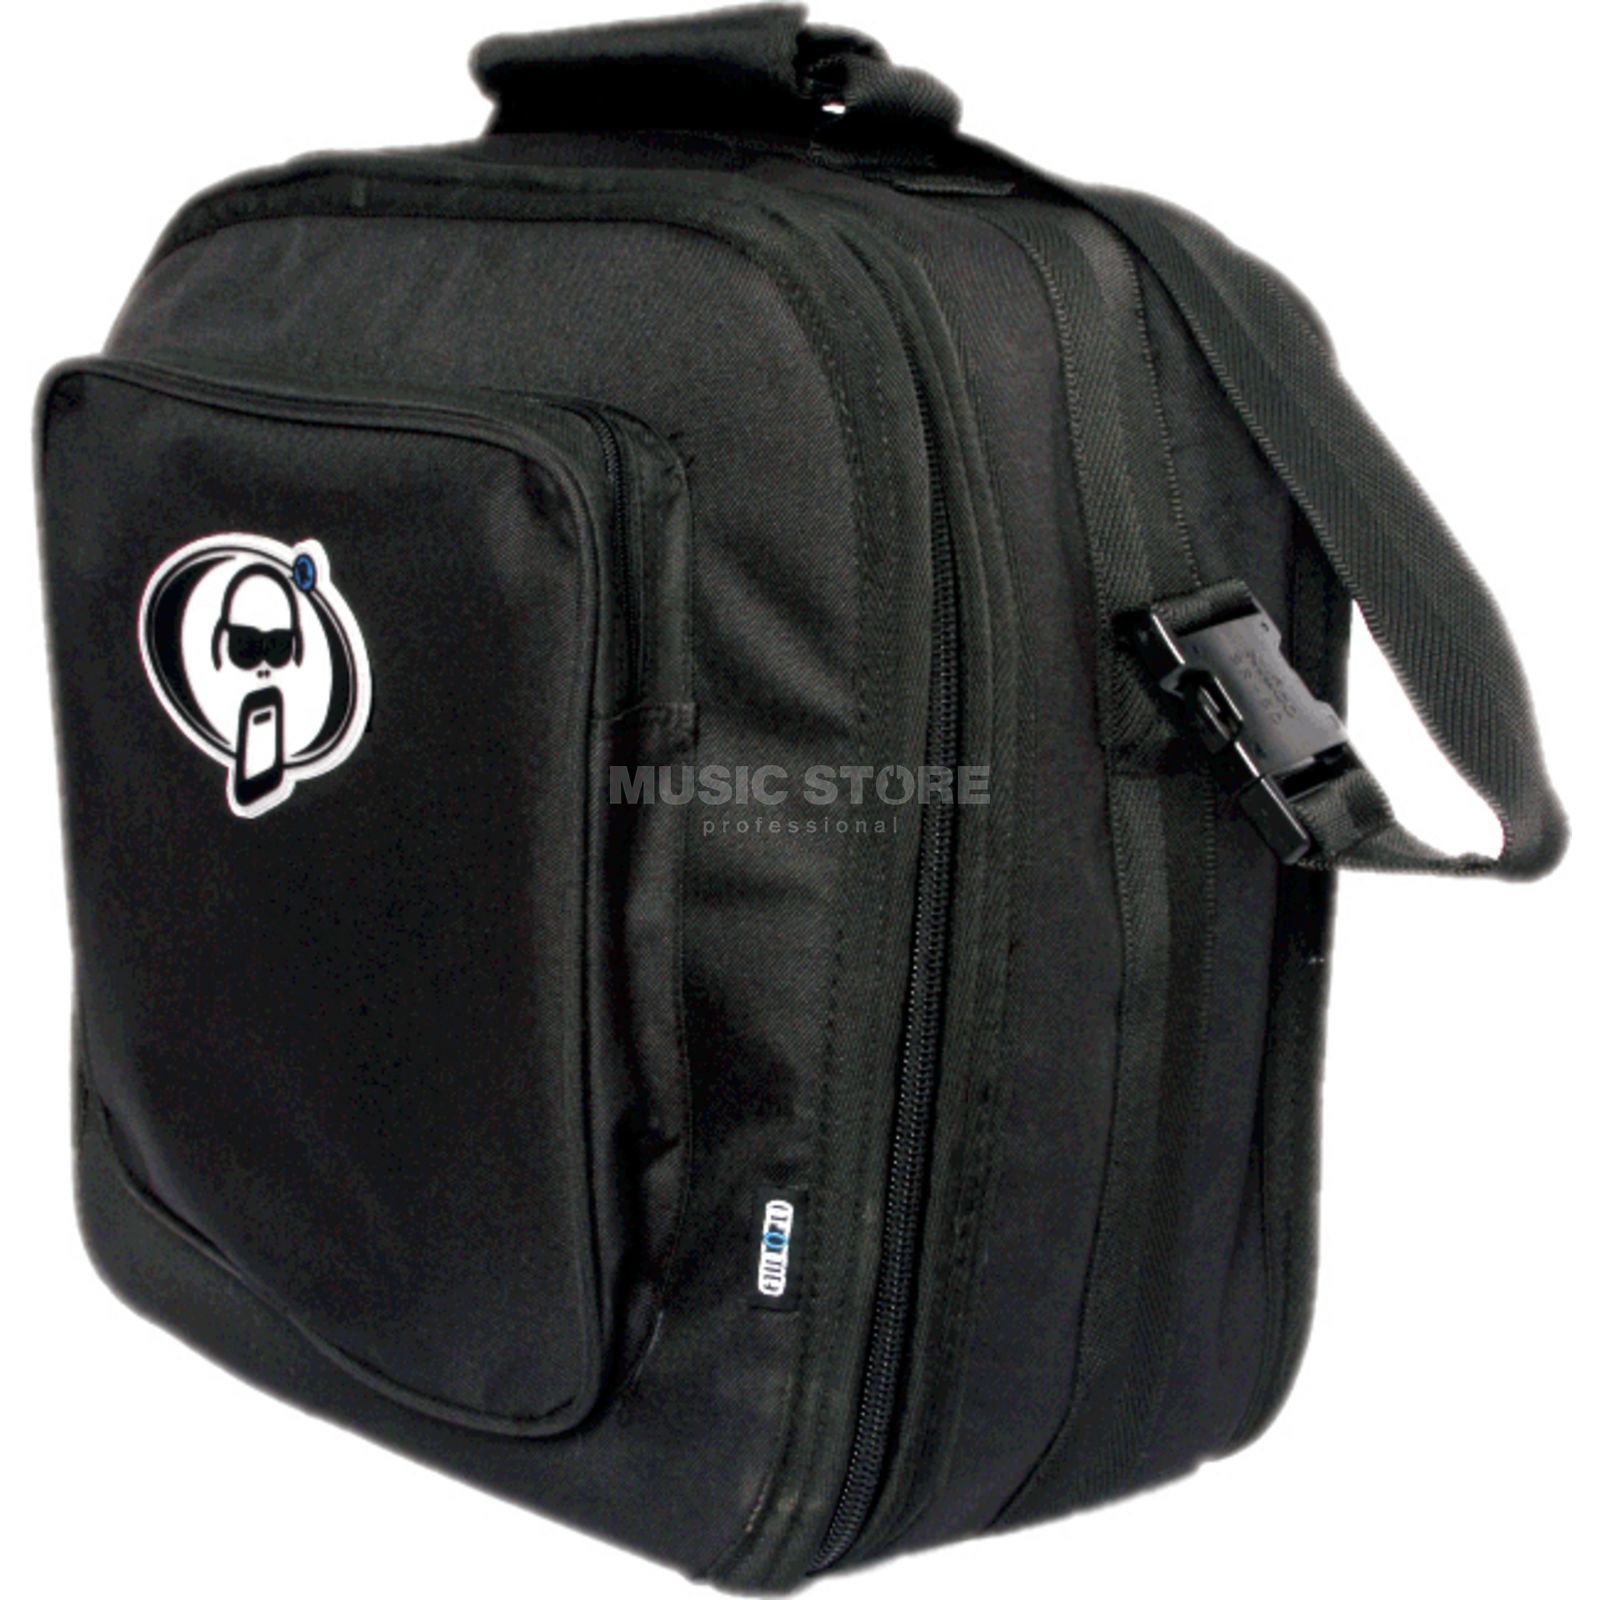 Protection Racket Double Pedal Bag 8116 Produktbillede